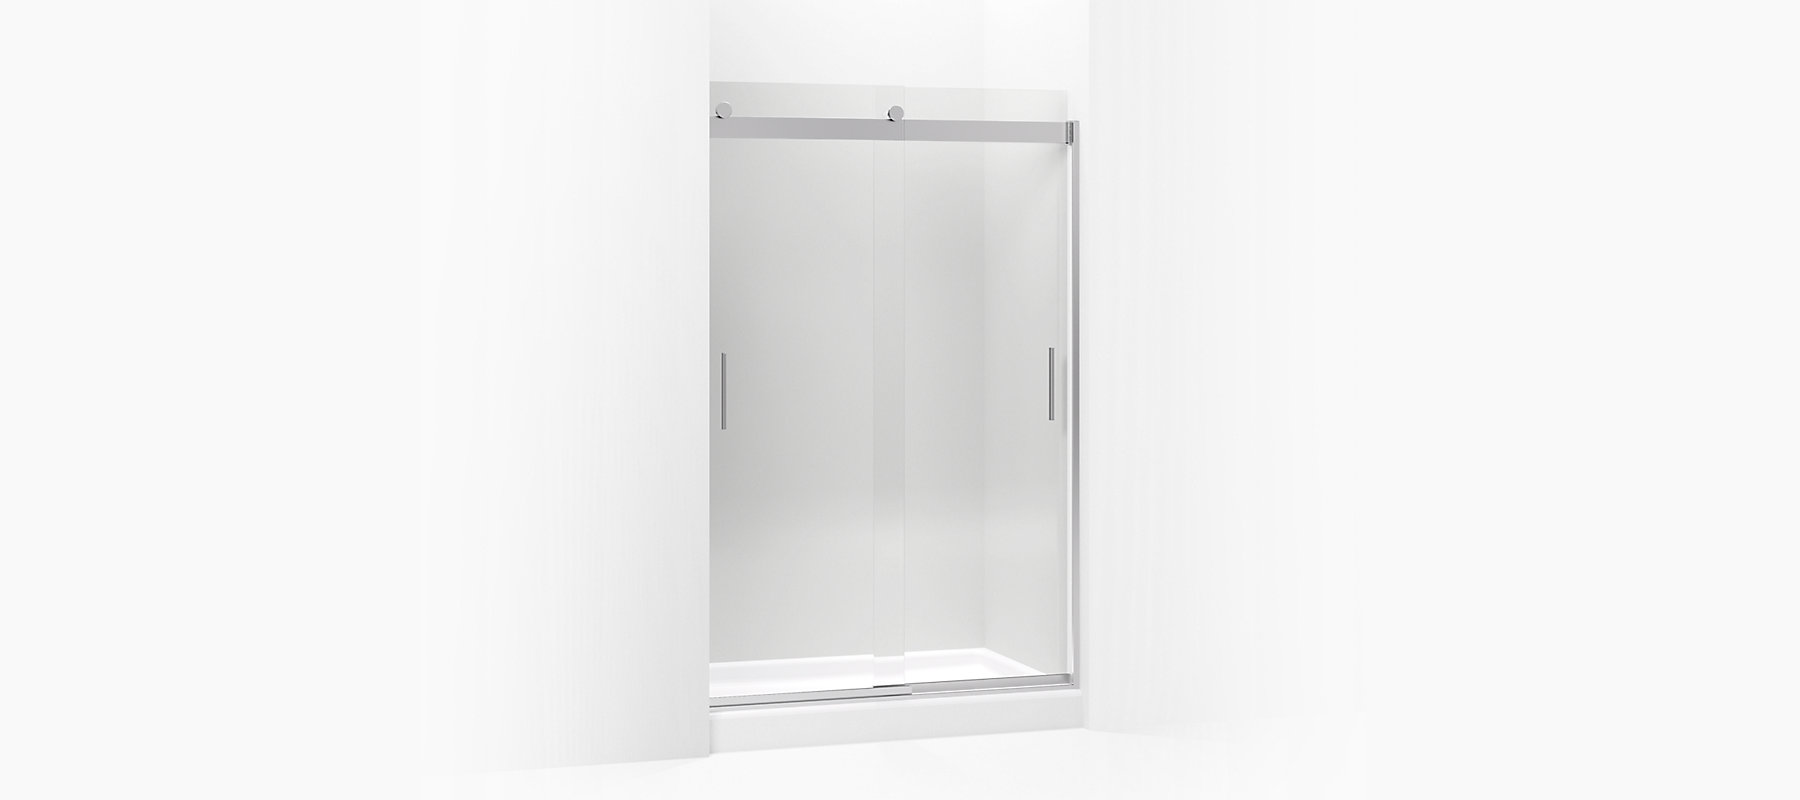 Kohler Shower Doors Levity Beautify The Bathroom With